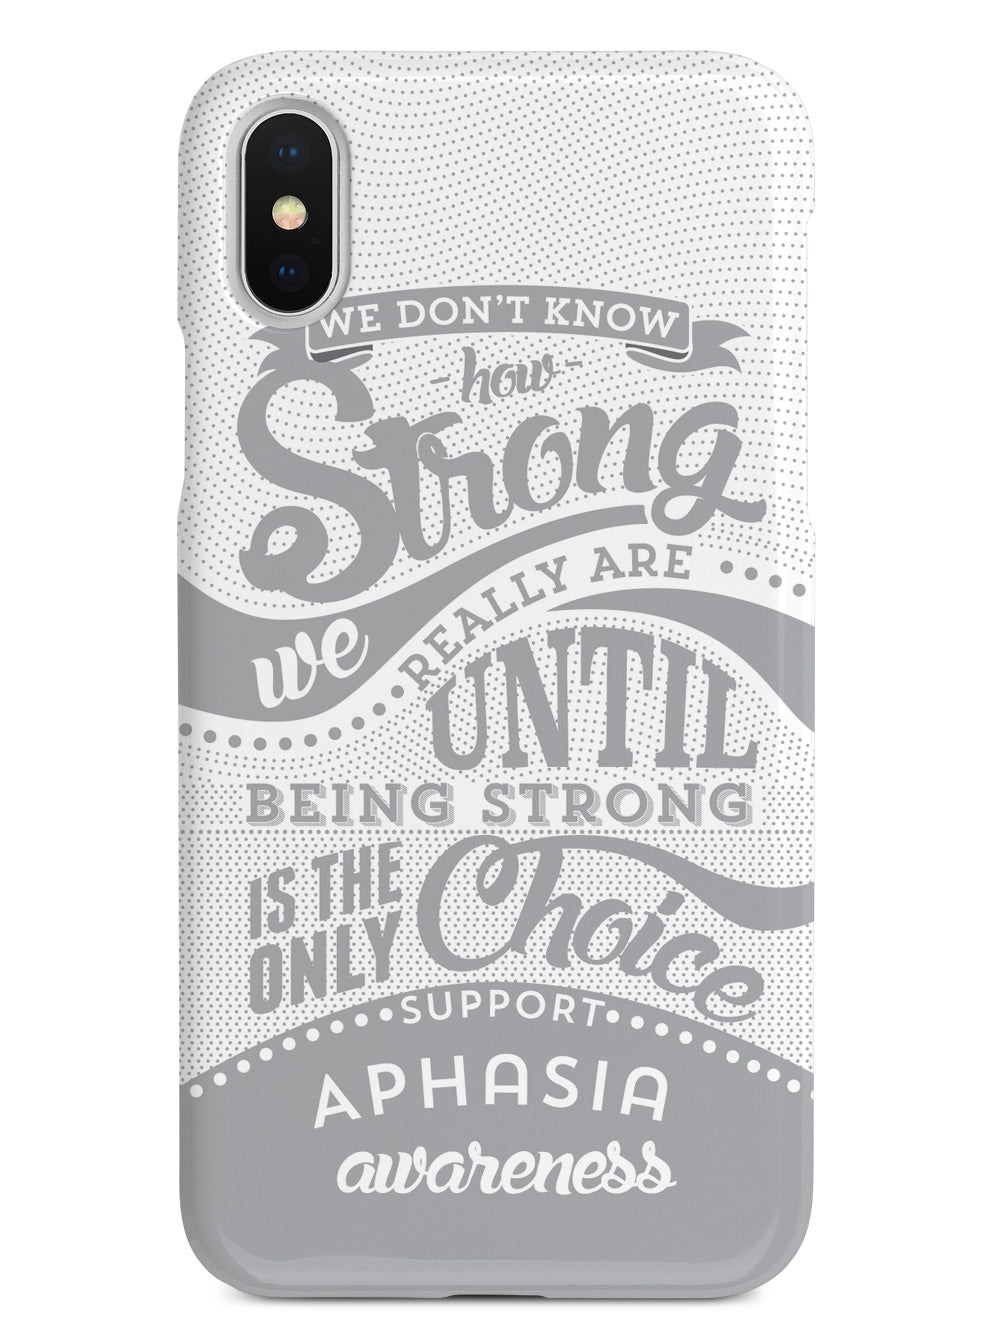 Aphasia Awareness - How Strong Case